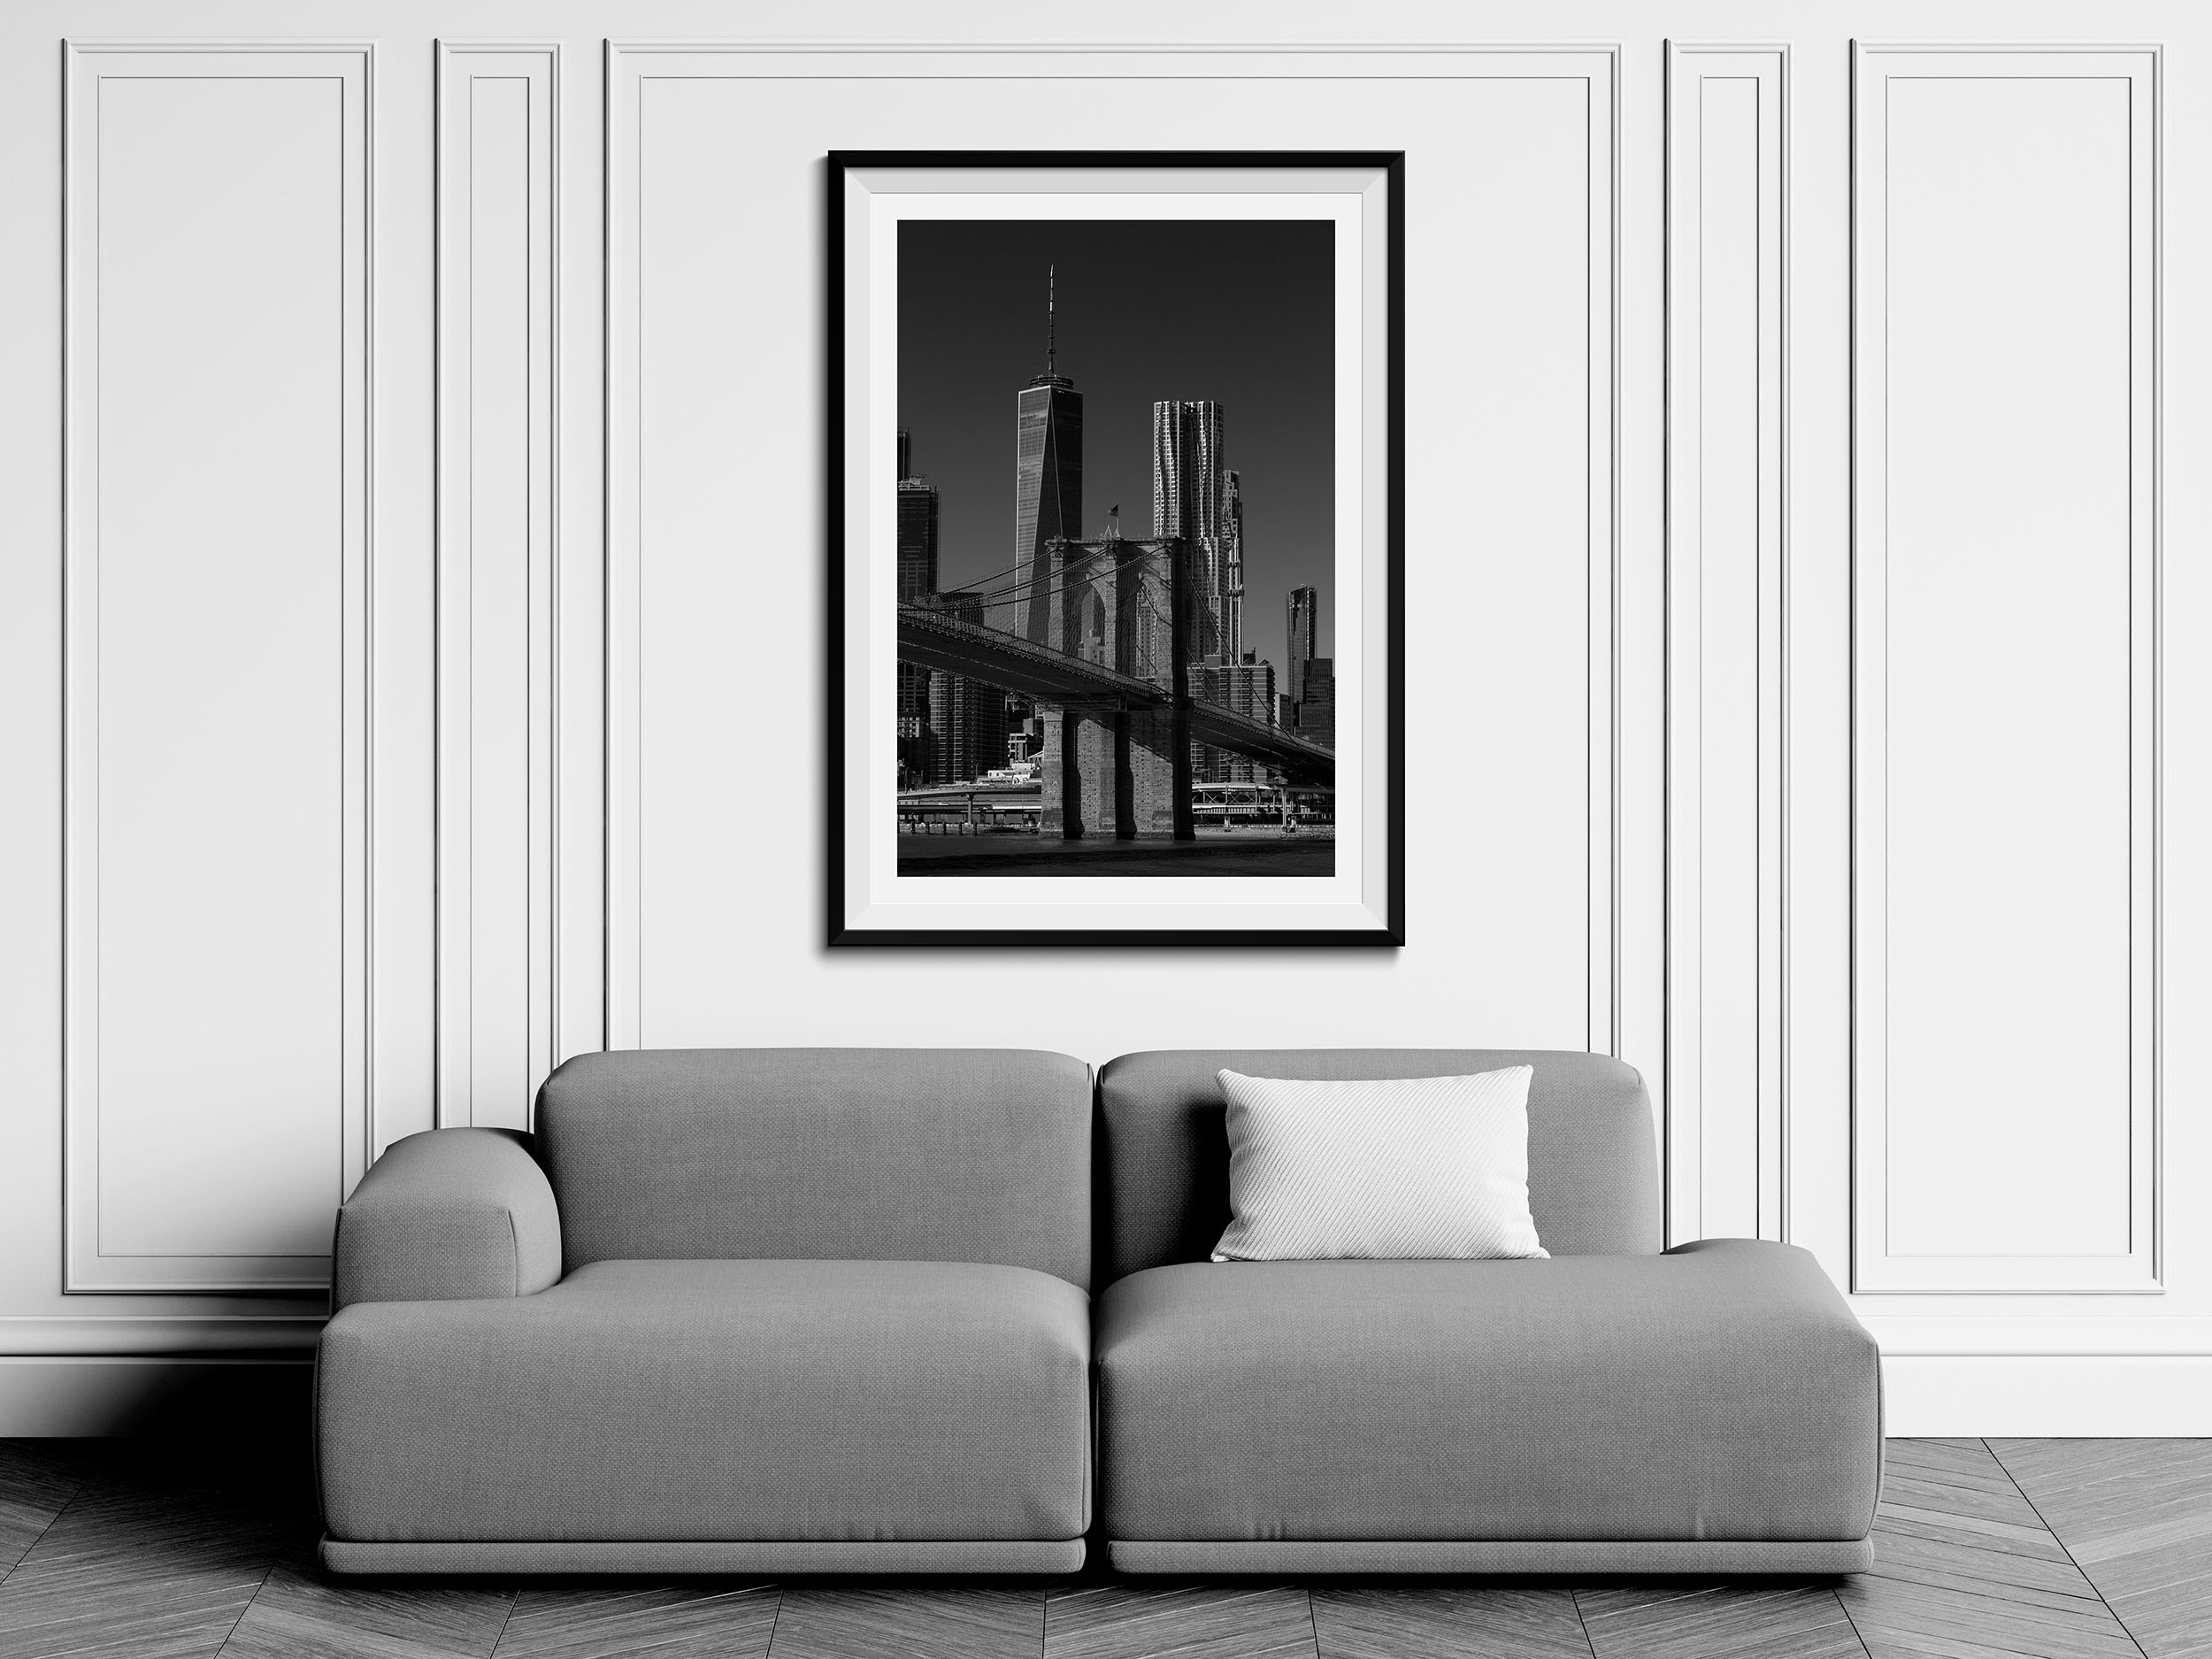 Brooklyn Bridge - Fine Art Photography Print